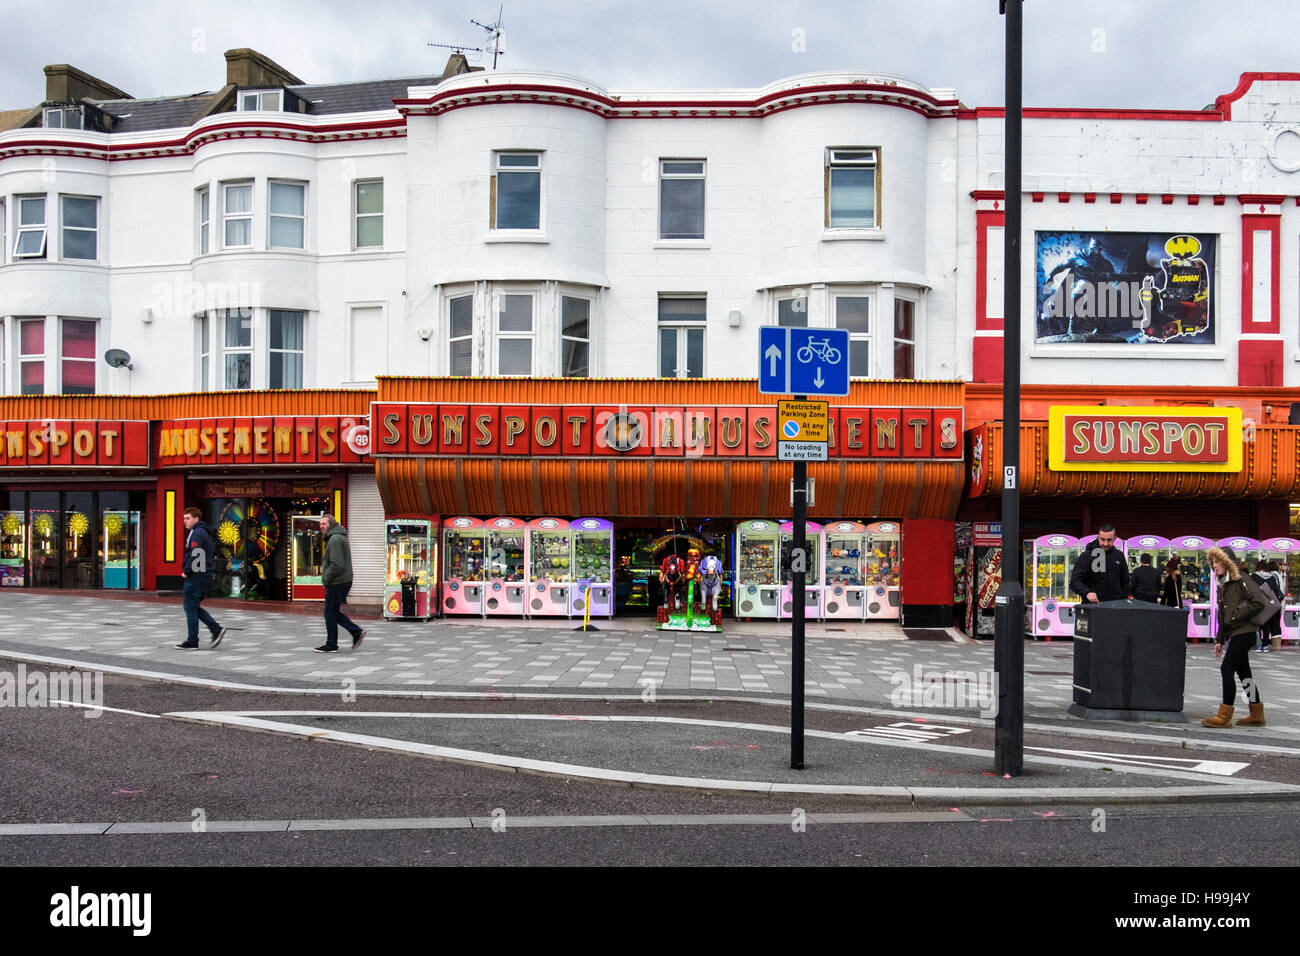 Sunspot amusement arcade for playing games, slot machines and betting. Southend-on-sea, Essex,England - Stock Image